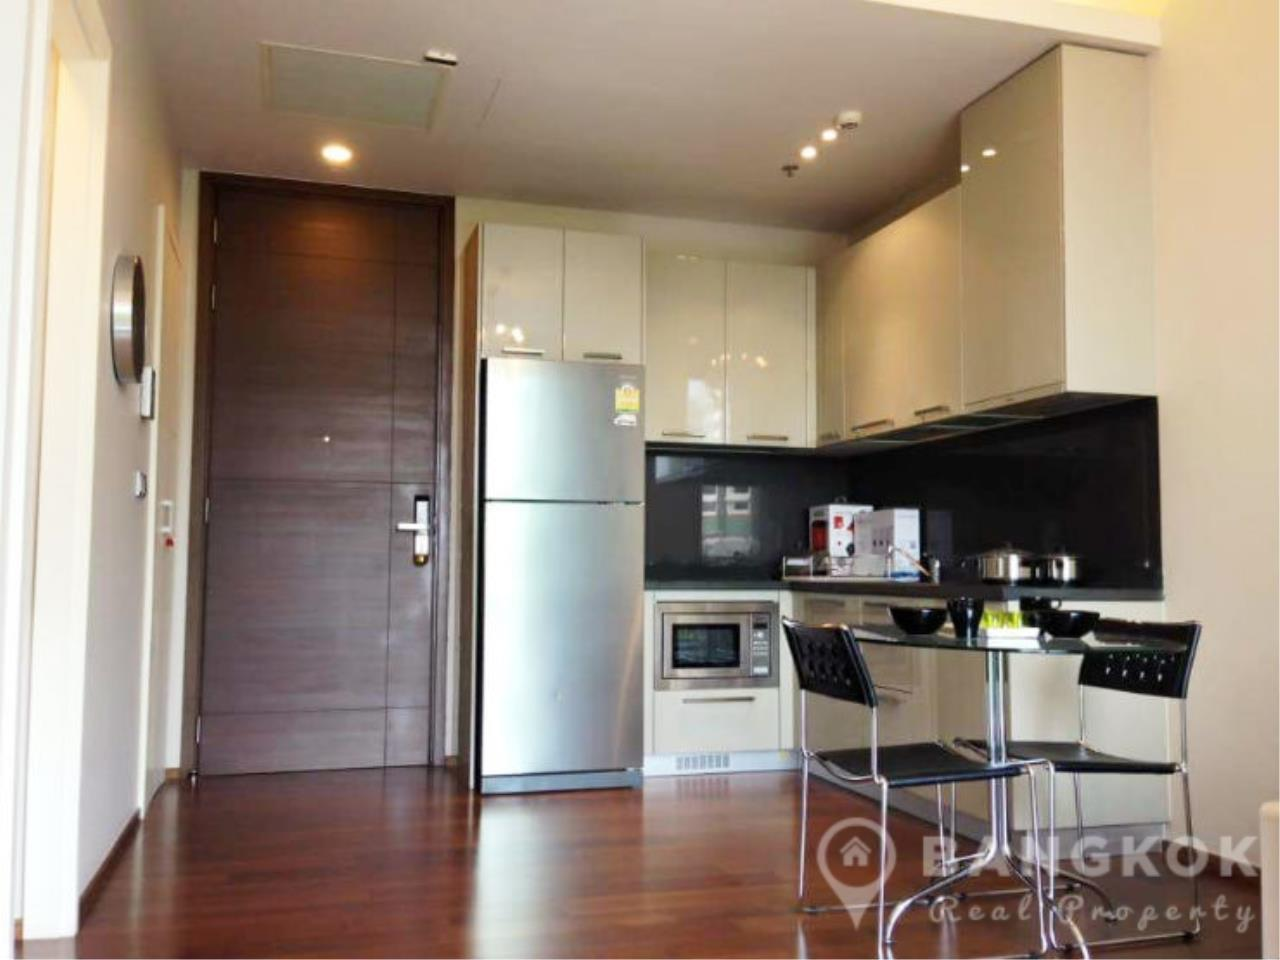 Bangkok Real Property Agency's Quattro by Sansiri | Stylish Spacious 1 Bedroom in Thonglor 3